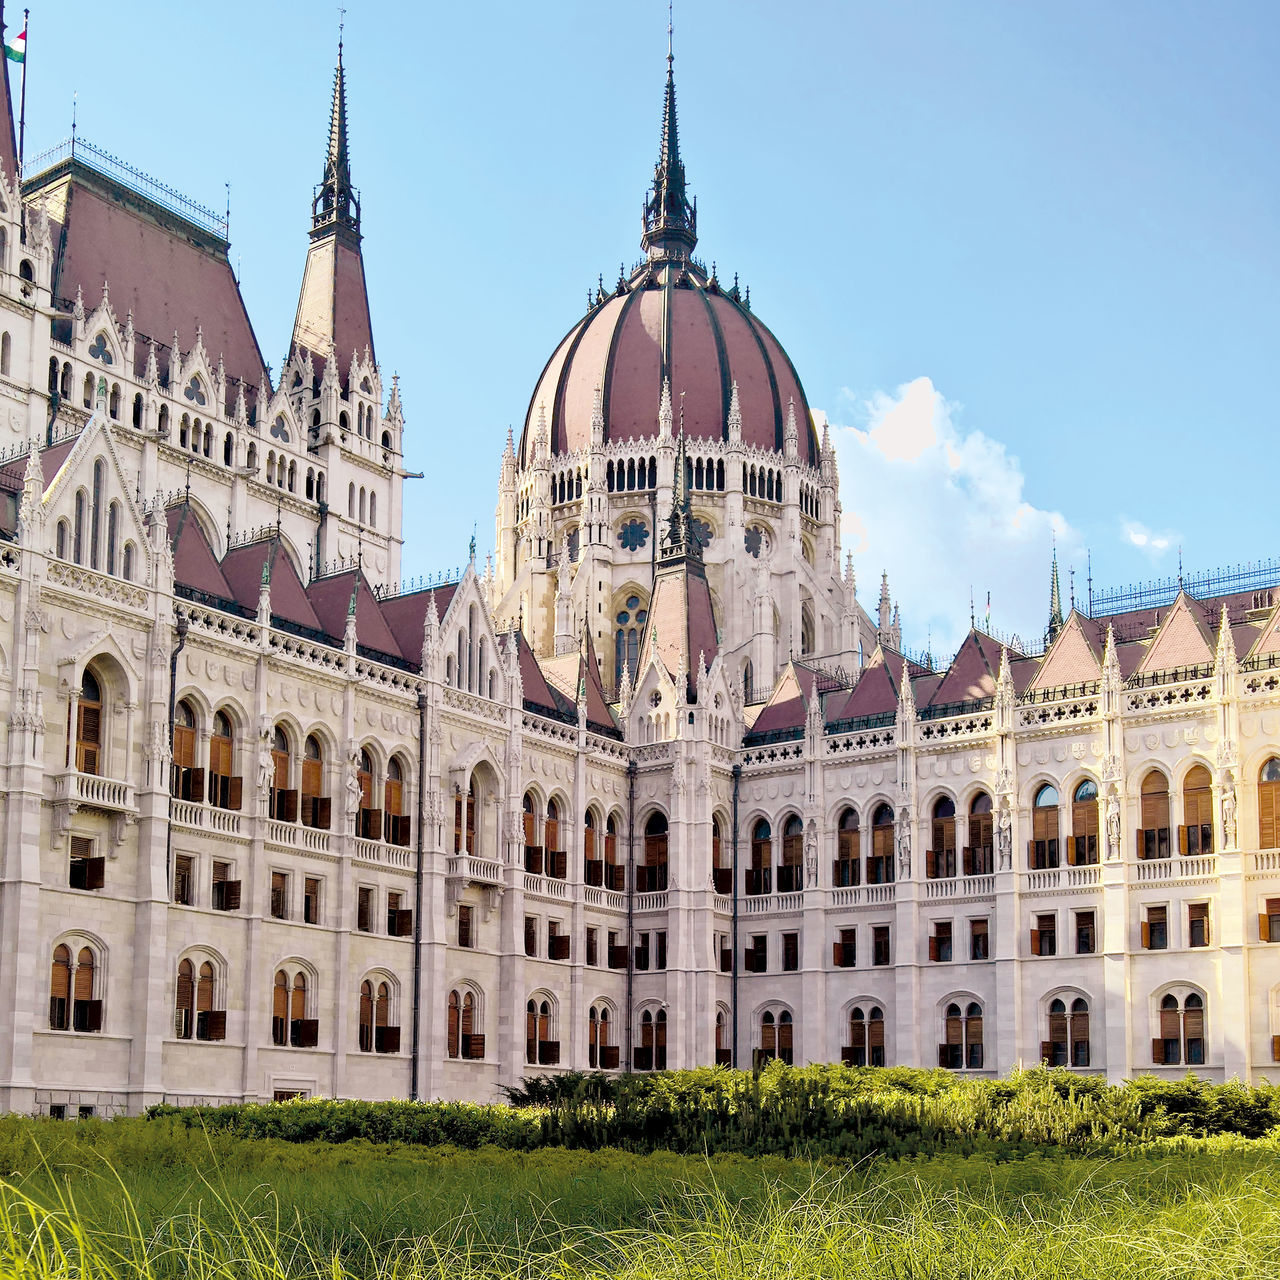 Beauty In Nature Budapest Capital City Grass Green Kossuth Lajos Tér Kossuth Square Nature No People Orszaghaz Parliament Summer Sunset